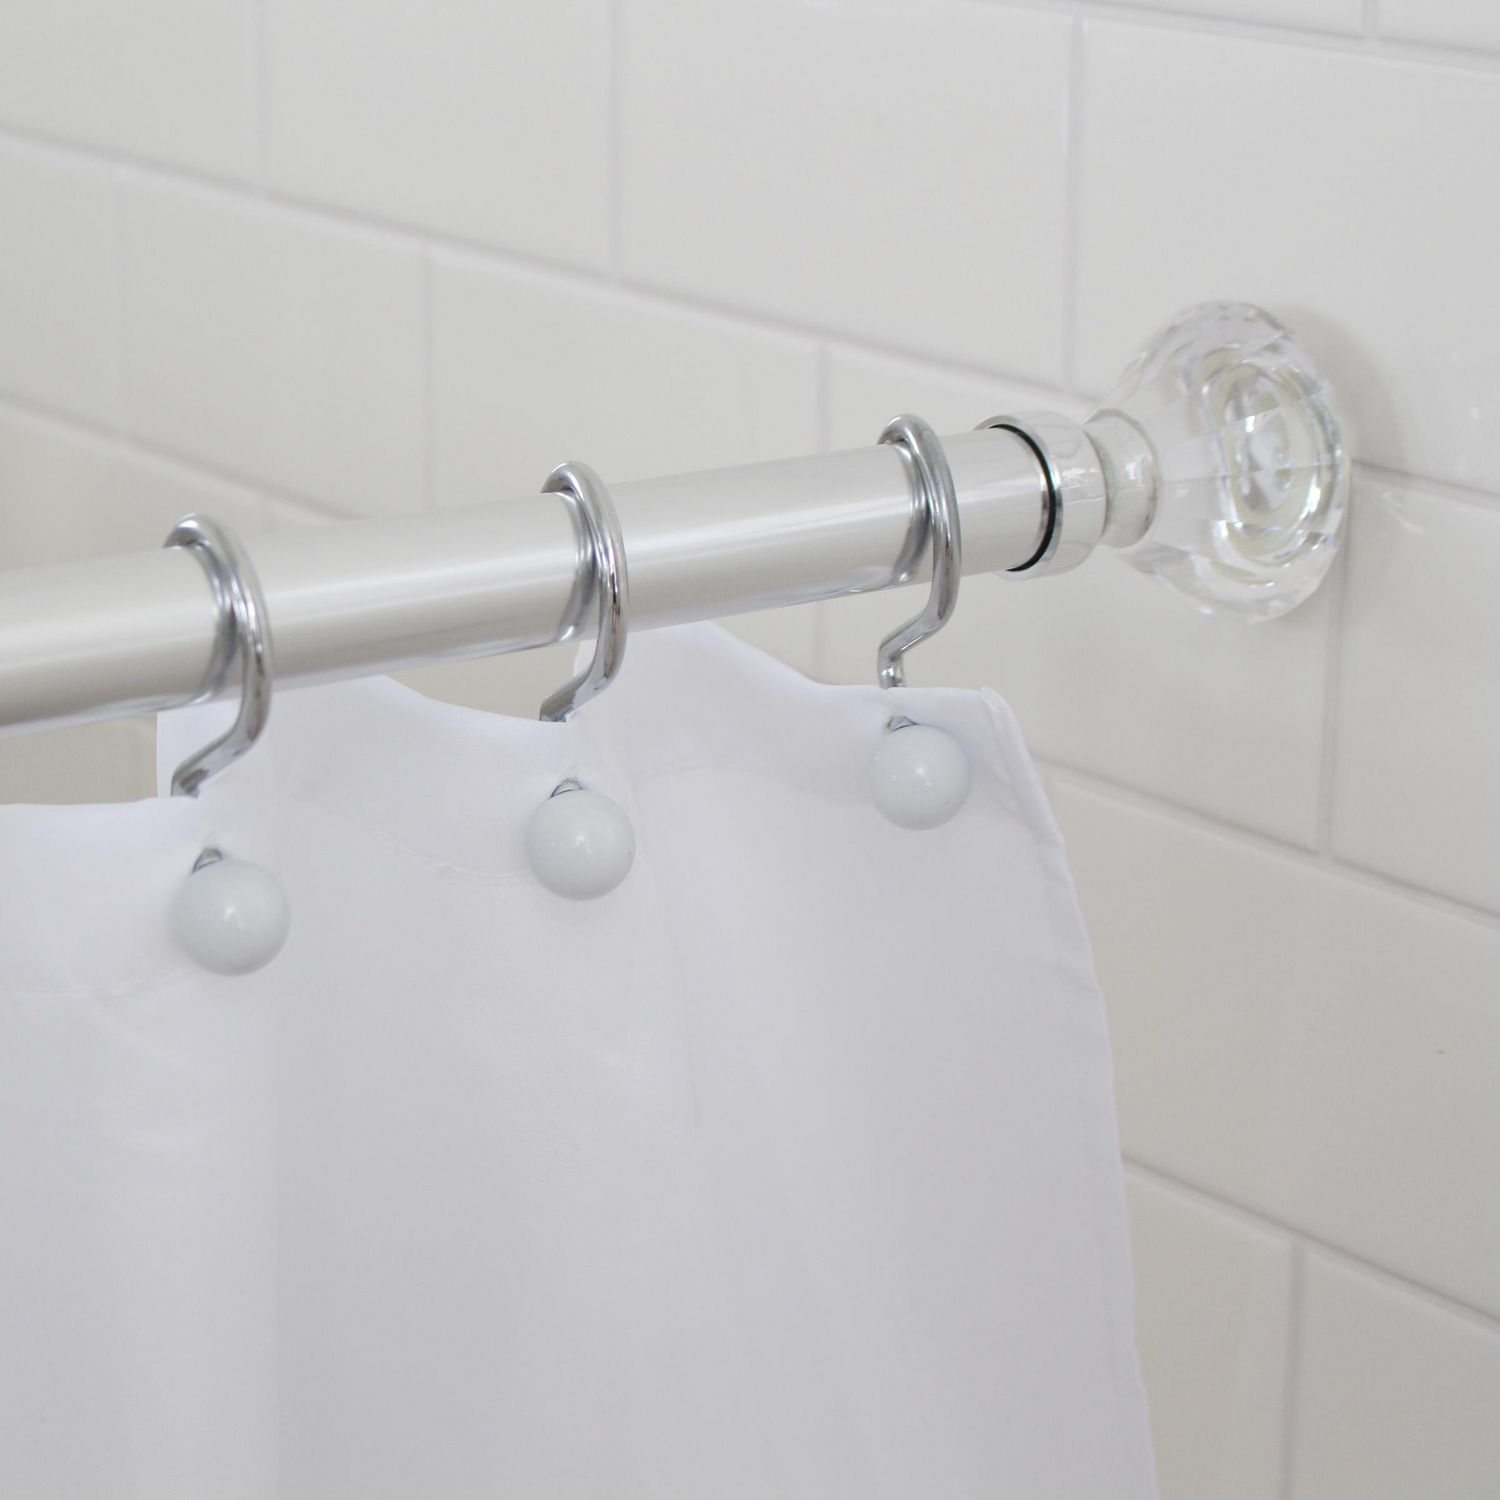 Splash Home Olena Rust Resistant Strong Hold Constant Tension Bathroom Decorative Shower Curtain Rod Extendable 42 72 Inches